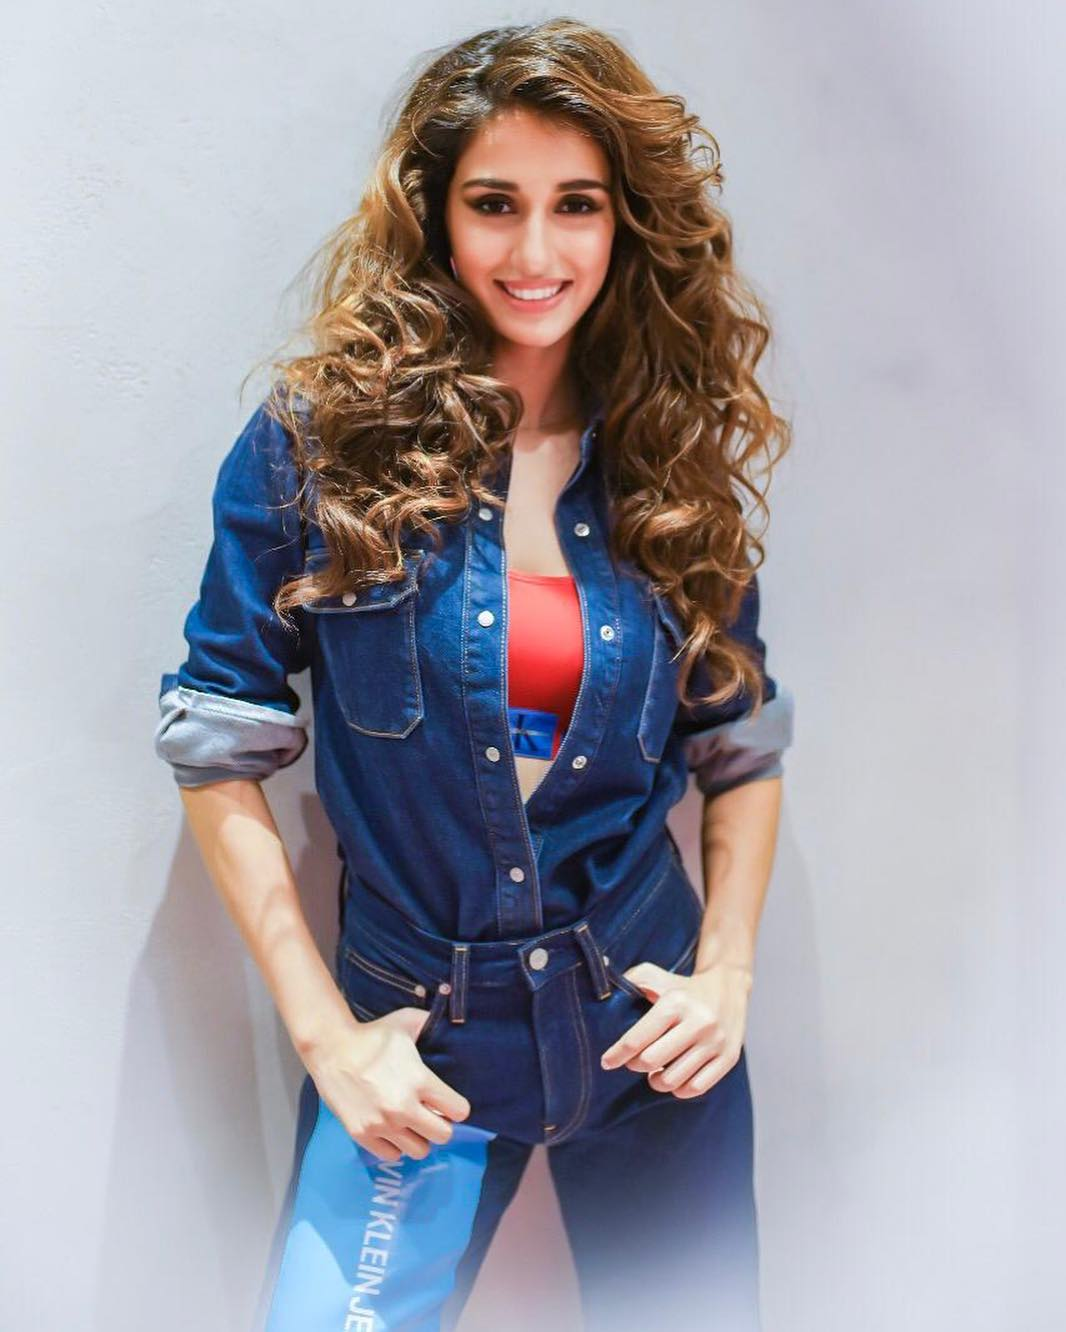 Disha Patani on Photoshoot